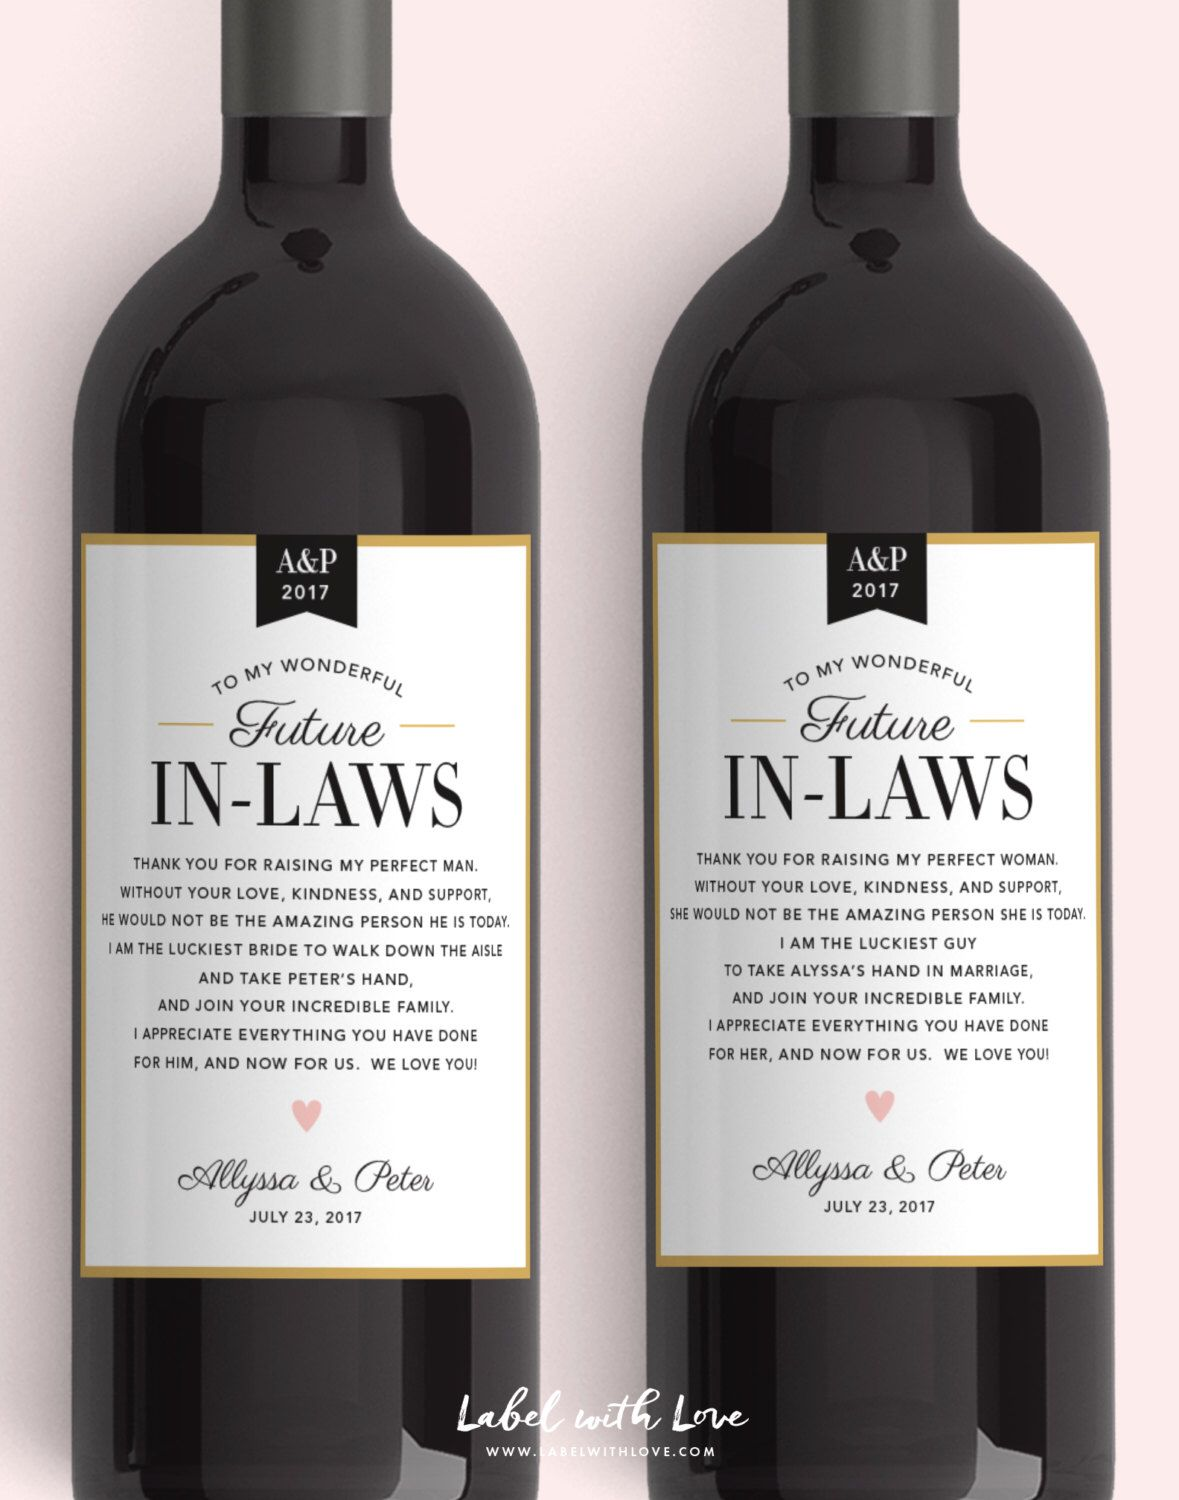 Lovely Far Law Pinterest Gifts Far Bride In Law Wine Labels Wedding Thank You Gift Parents Gifts Law Uk Bride Groom Law Wine Labels Wedding Thank You Gift Parents gifts Gifts For Father In Law